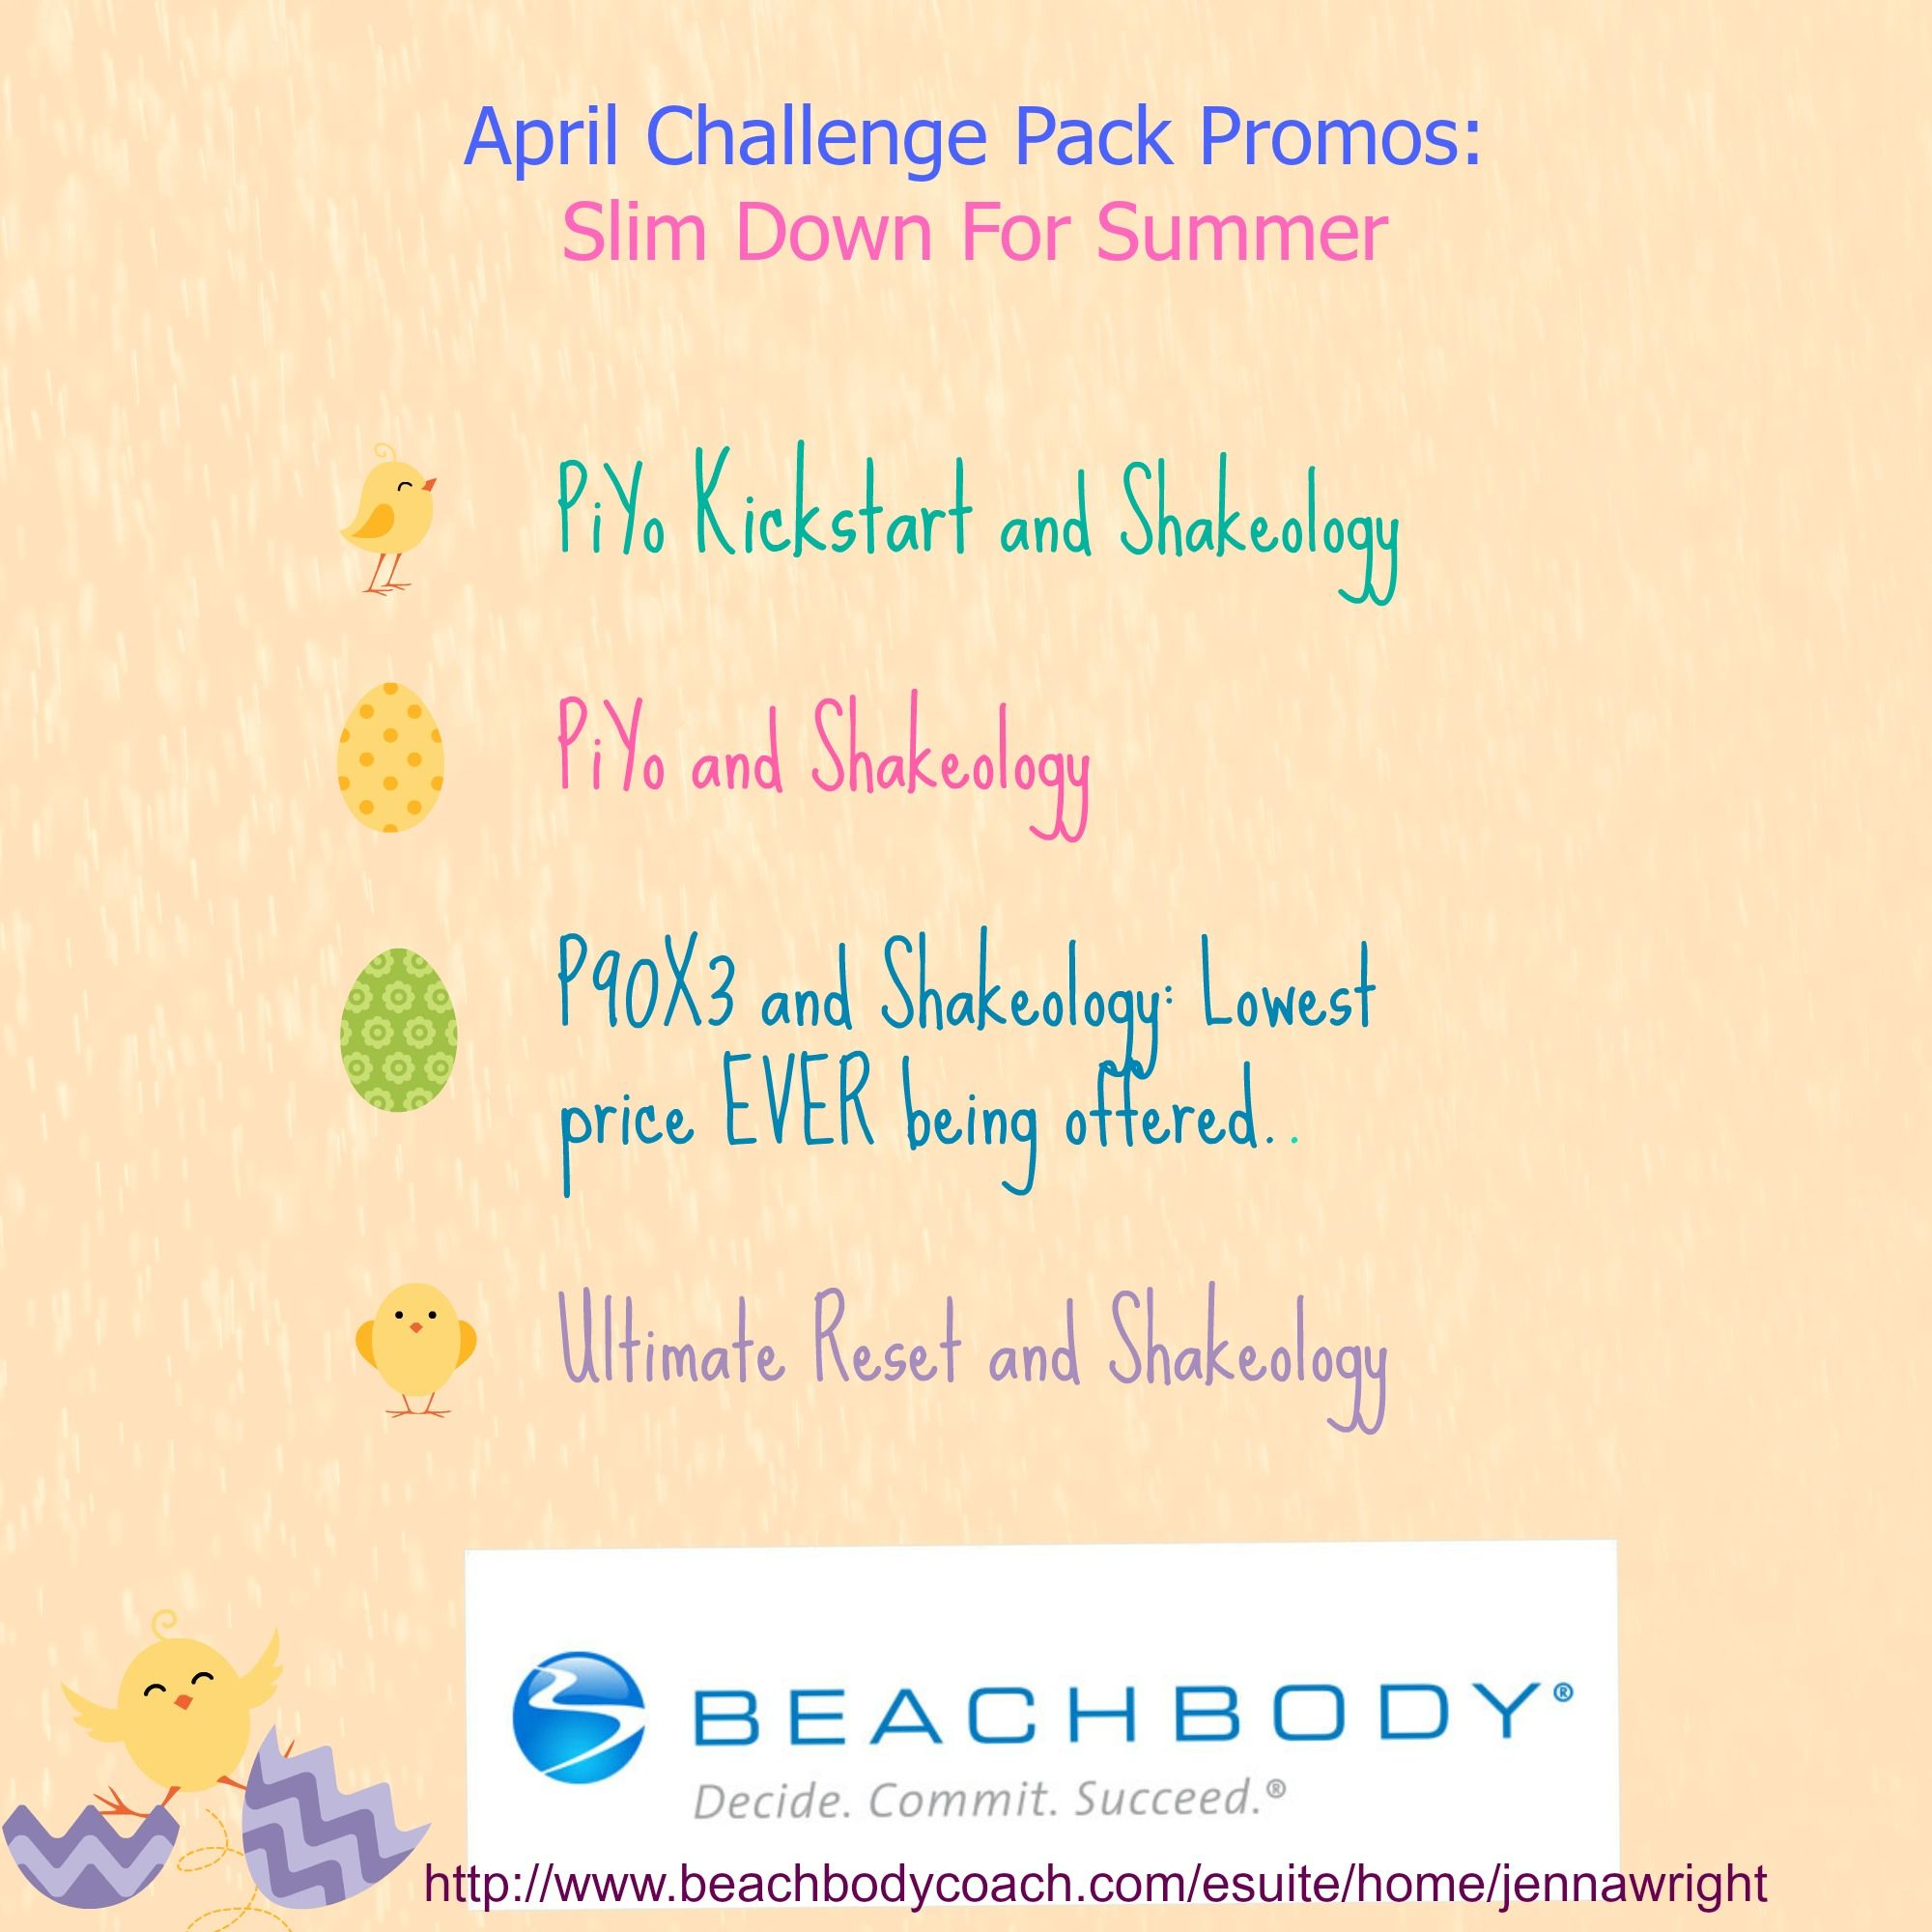 April Challenge Pack Promotions P90x3 Is Being